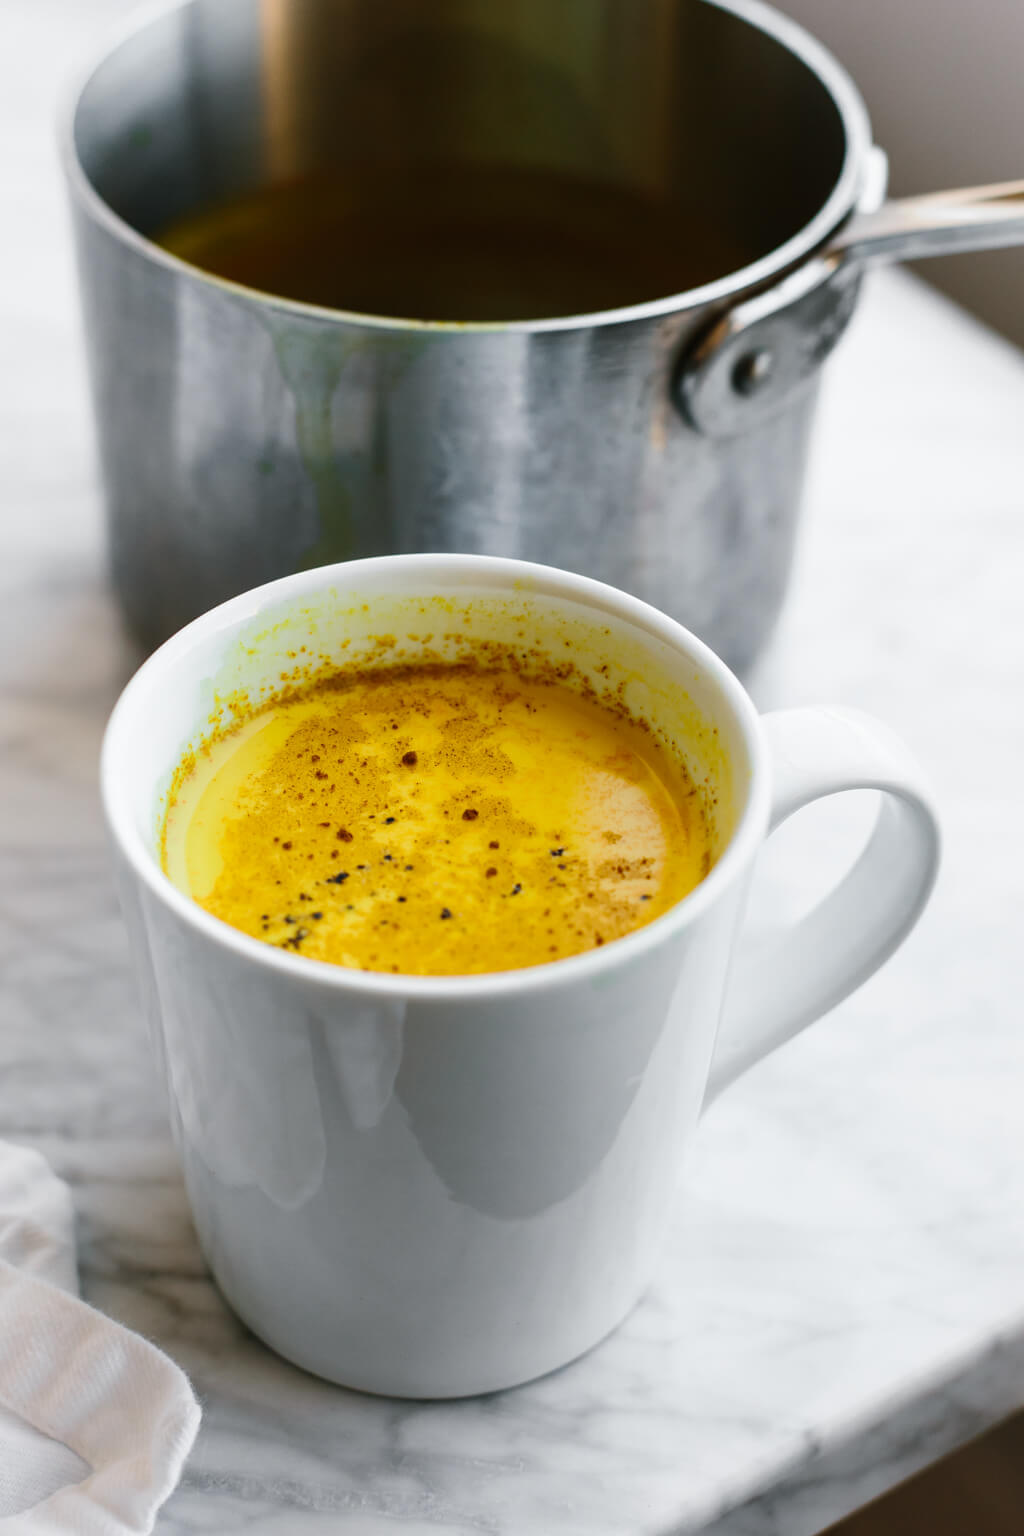 Golden Milk (Turmeric Milk) is tops on the list for a healthy, healing drink. It dairy-free and has potent anti-inflammatory benefits.